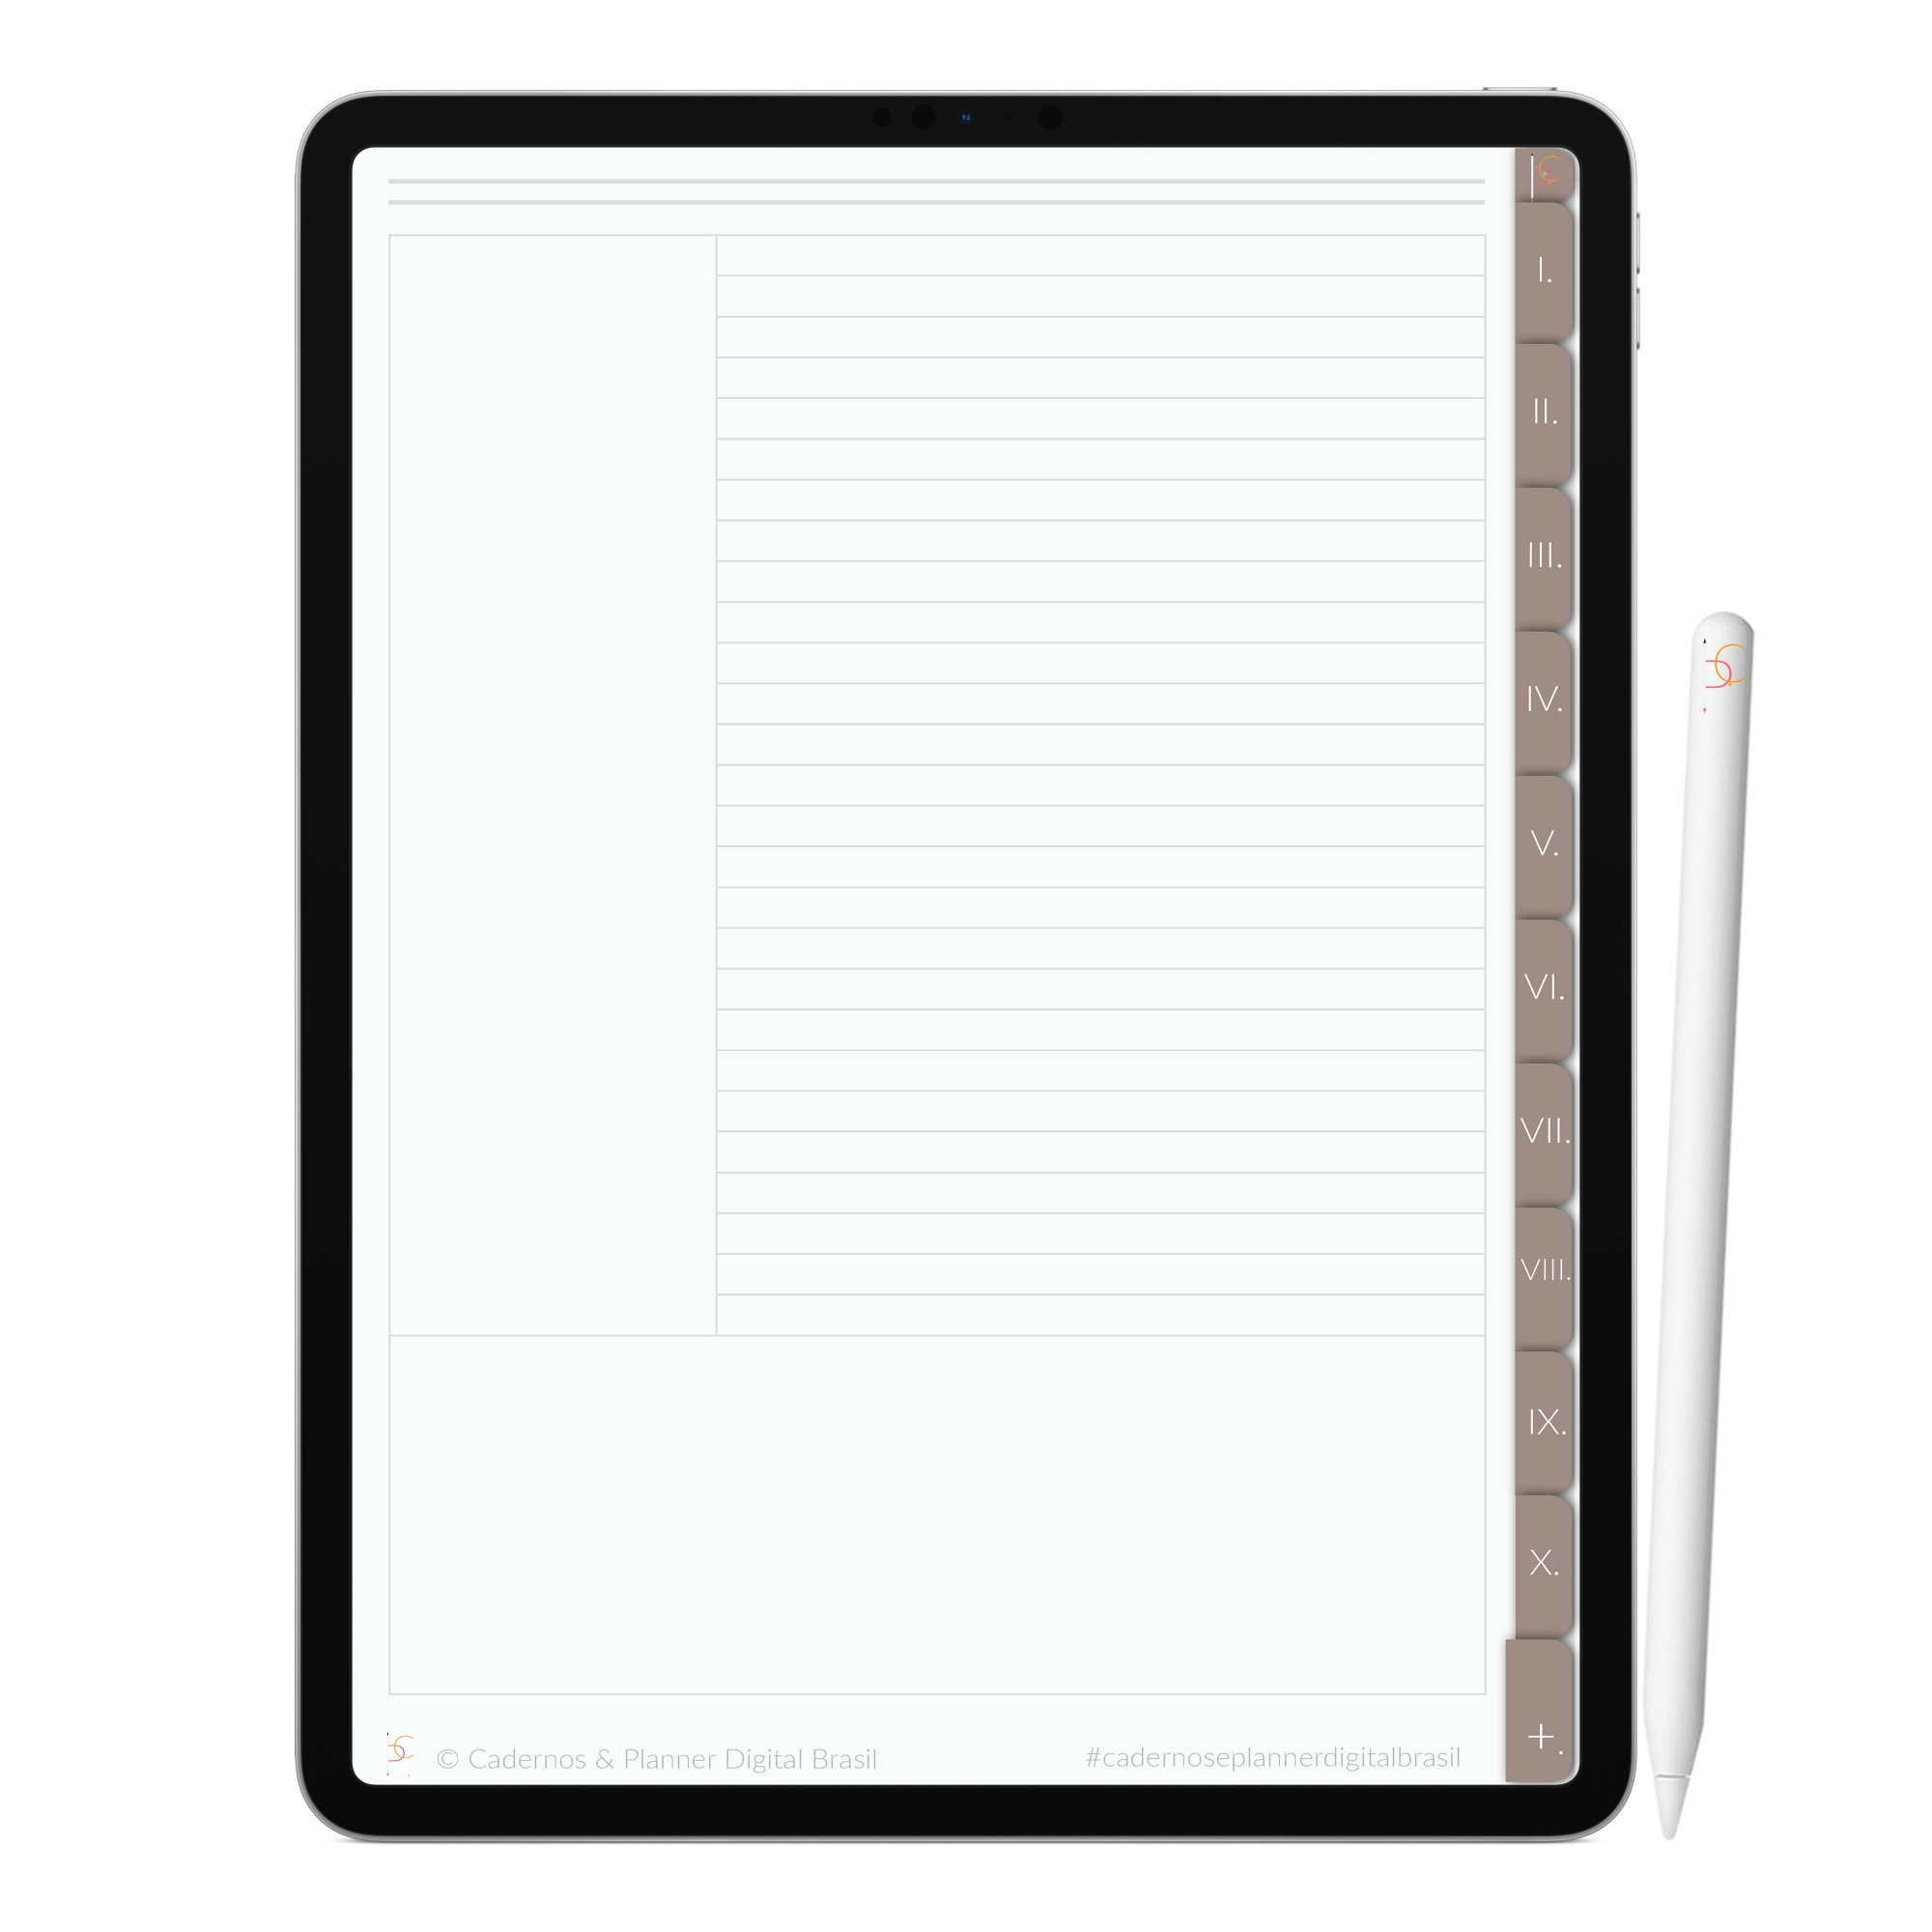 Caderno Digital Minimalista Coffee | Dez Divisórias Interativo| iPad Tablet | Download Instantâneo